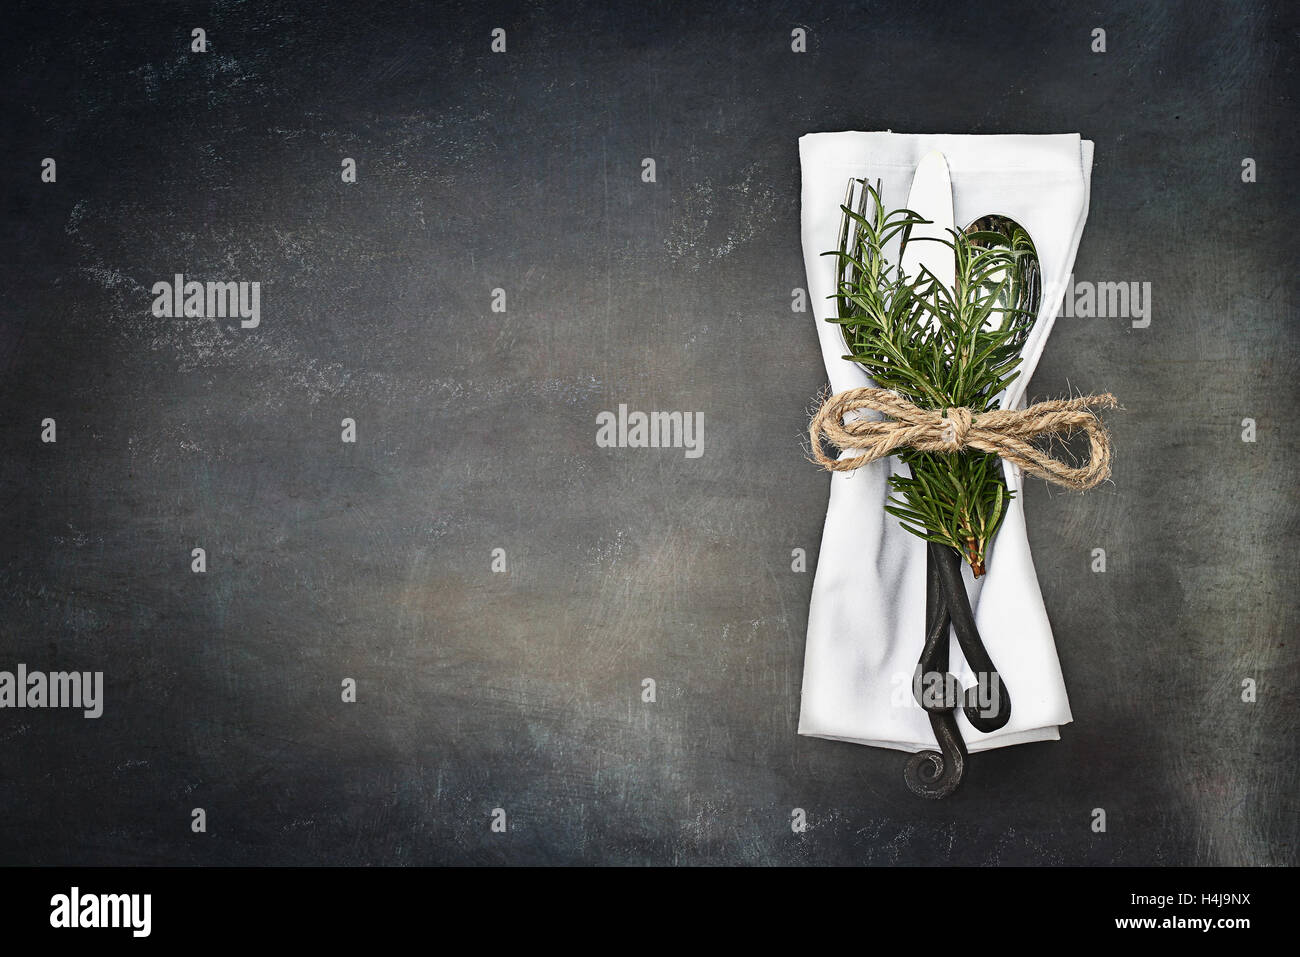 Antique silverware spoon and fork over a rustic grunge background. Image shot from overhead. - Stock Image